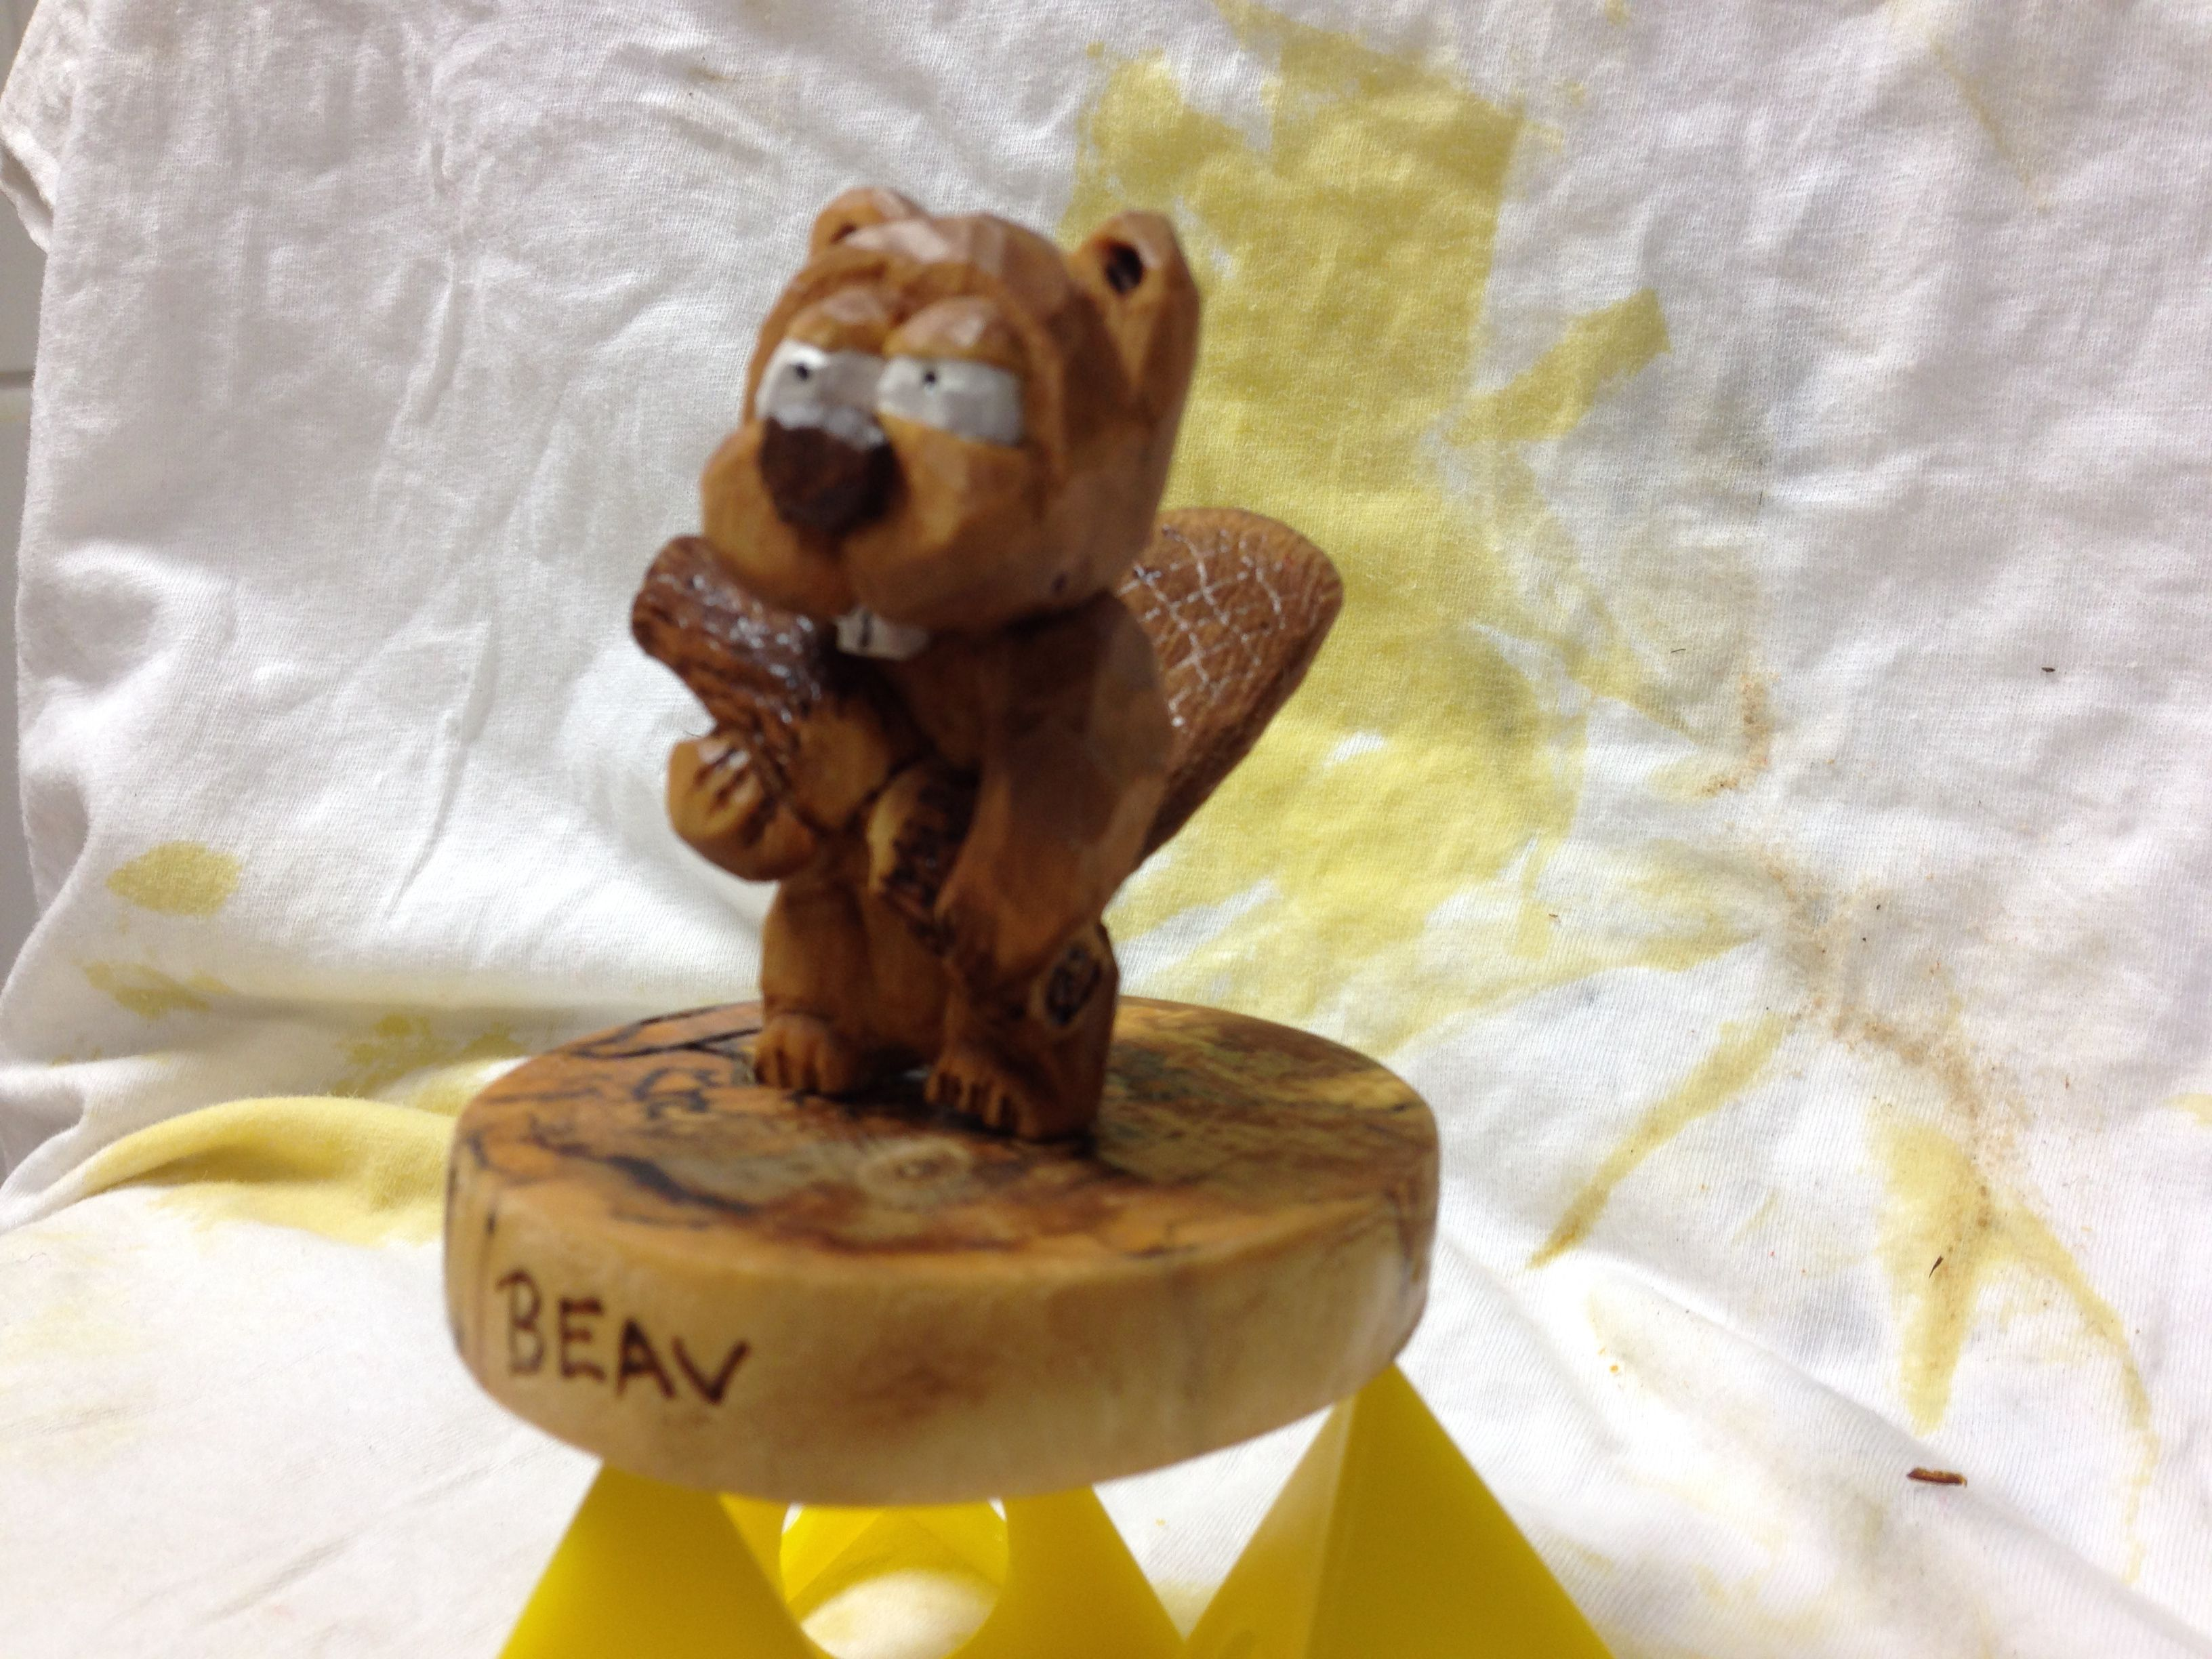 Small beaver figurine, basswood